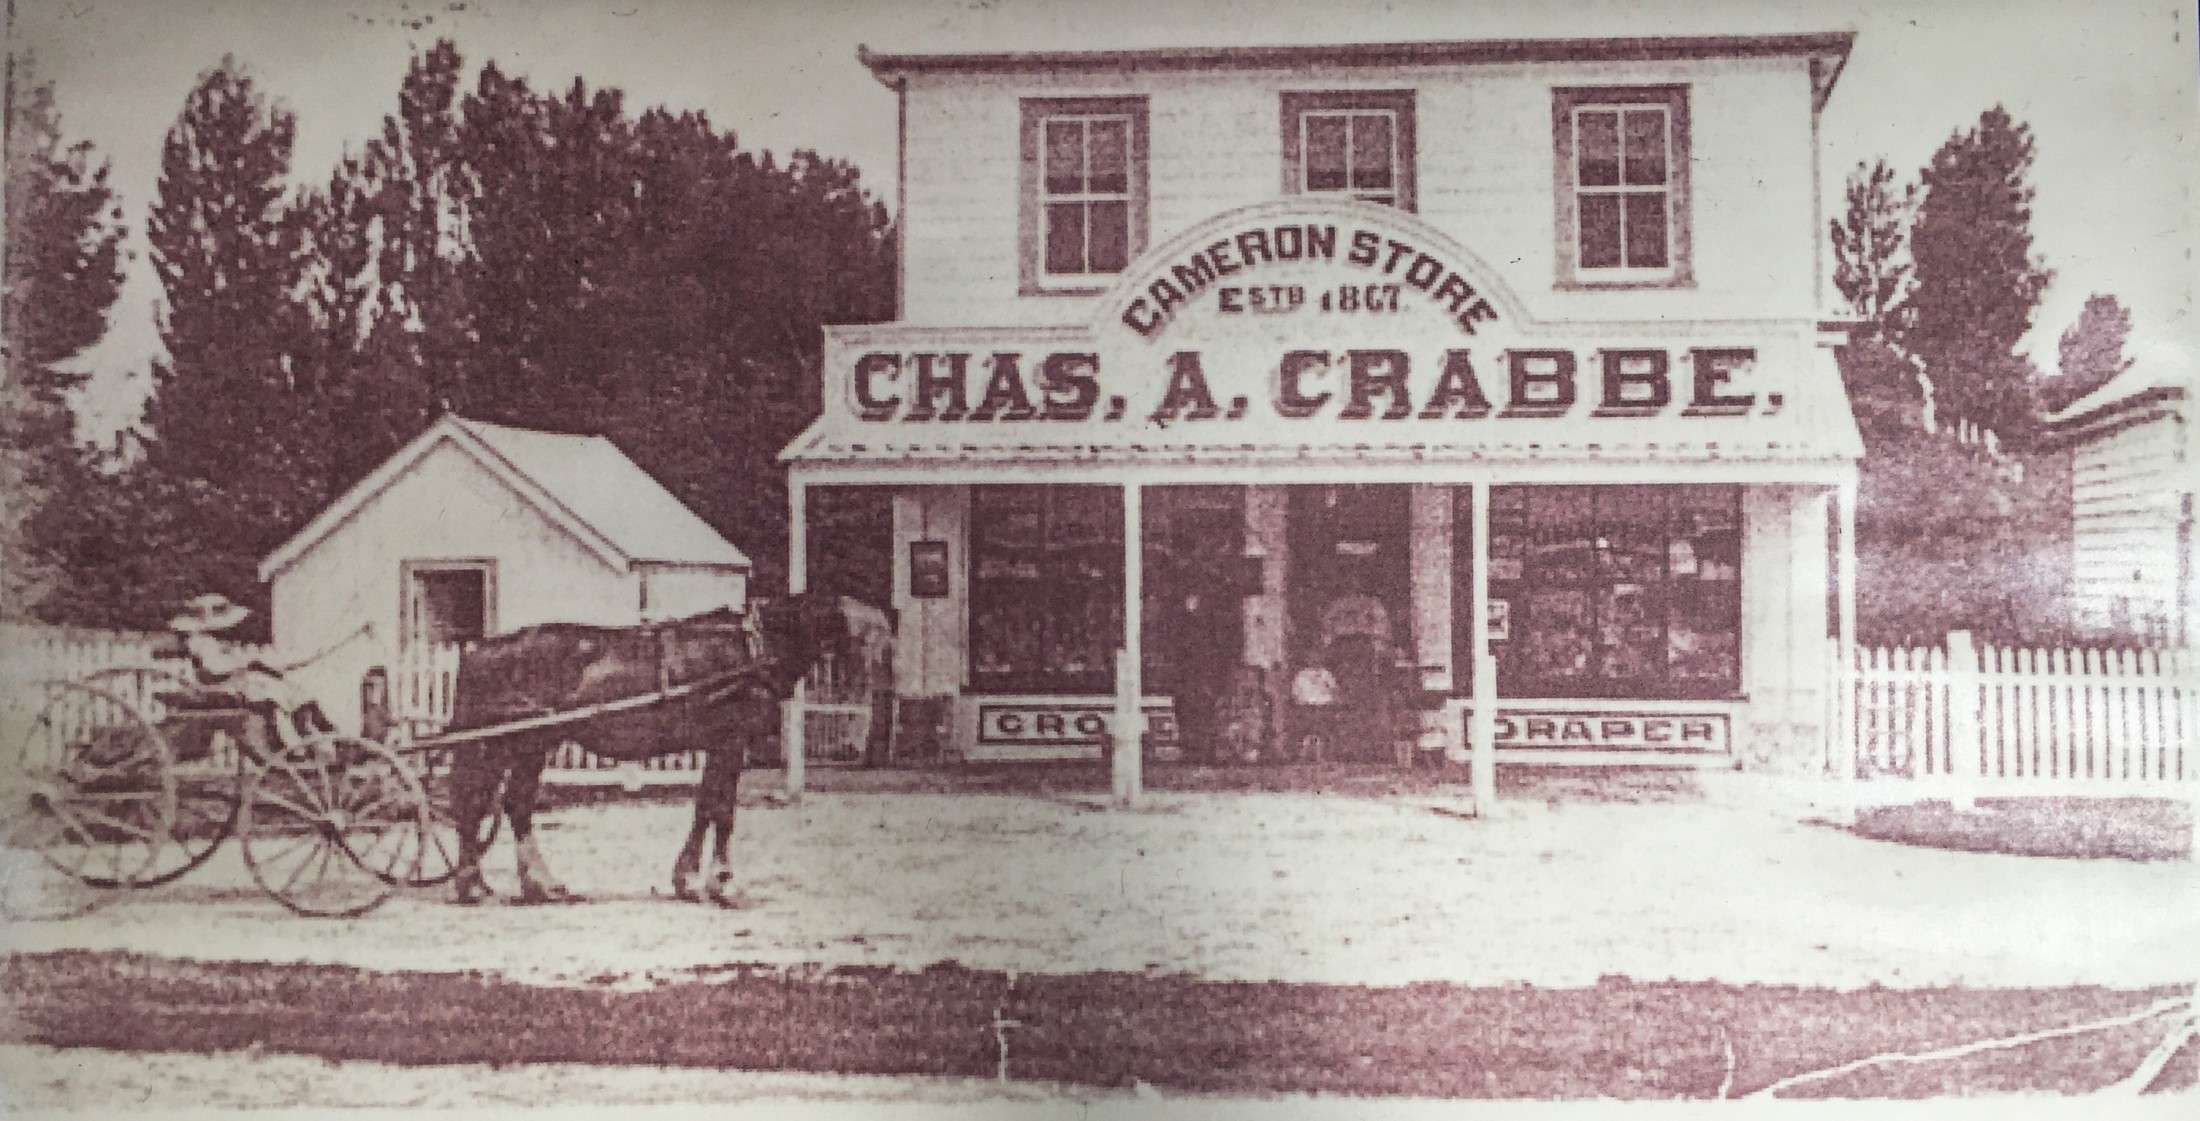 Cameron Store Chas A Crabbe